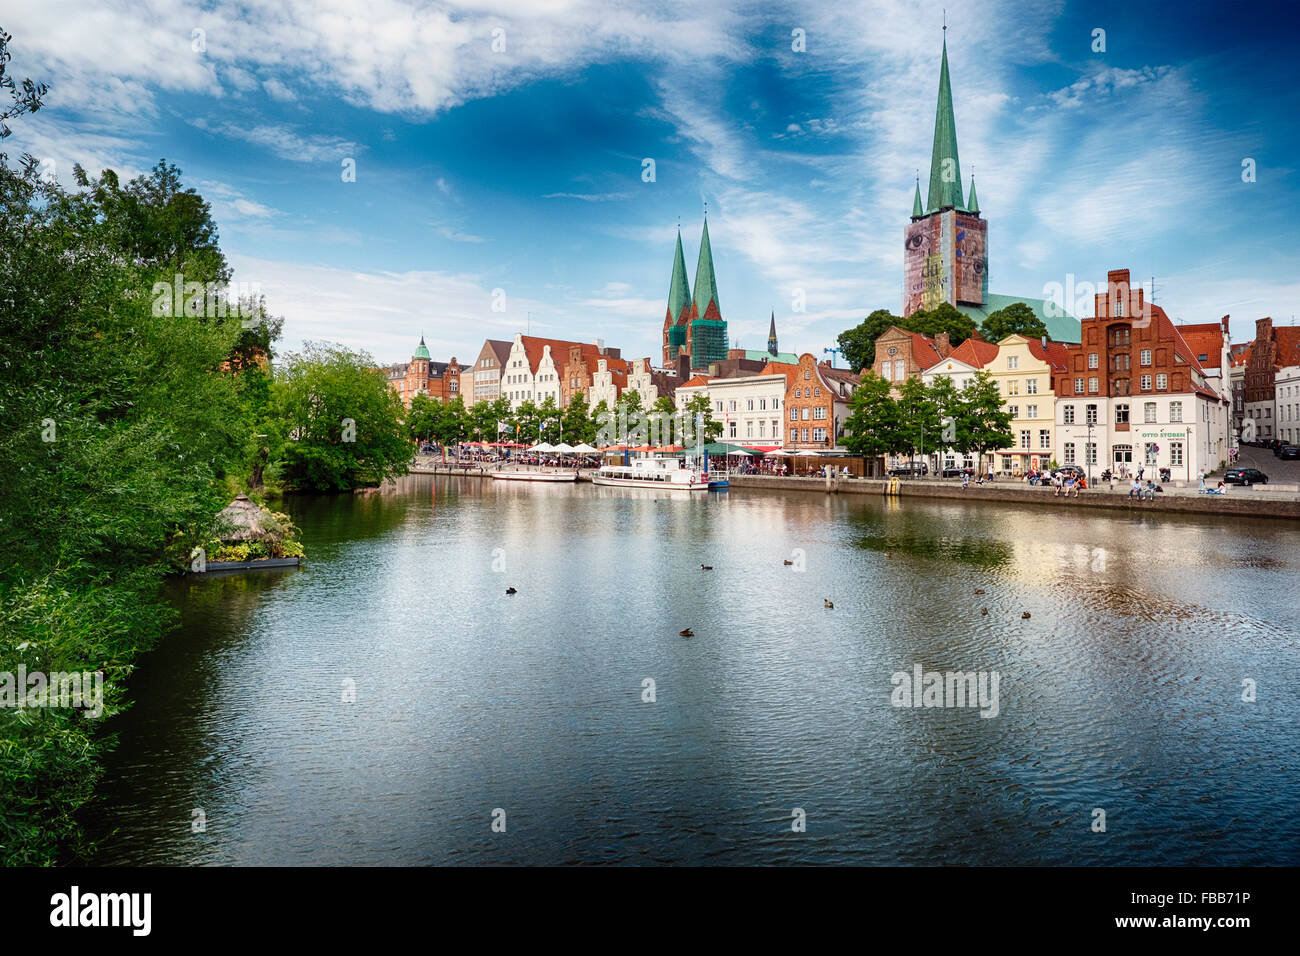 View of the Waterfront of Old Town Lubeck with the Trave Canal, Schleswig-Holstein, Germany - Stock Image